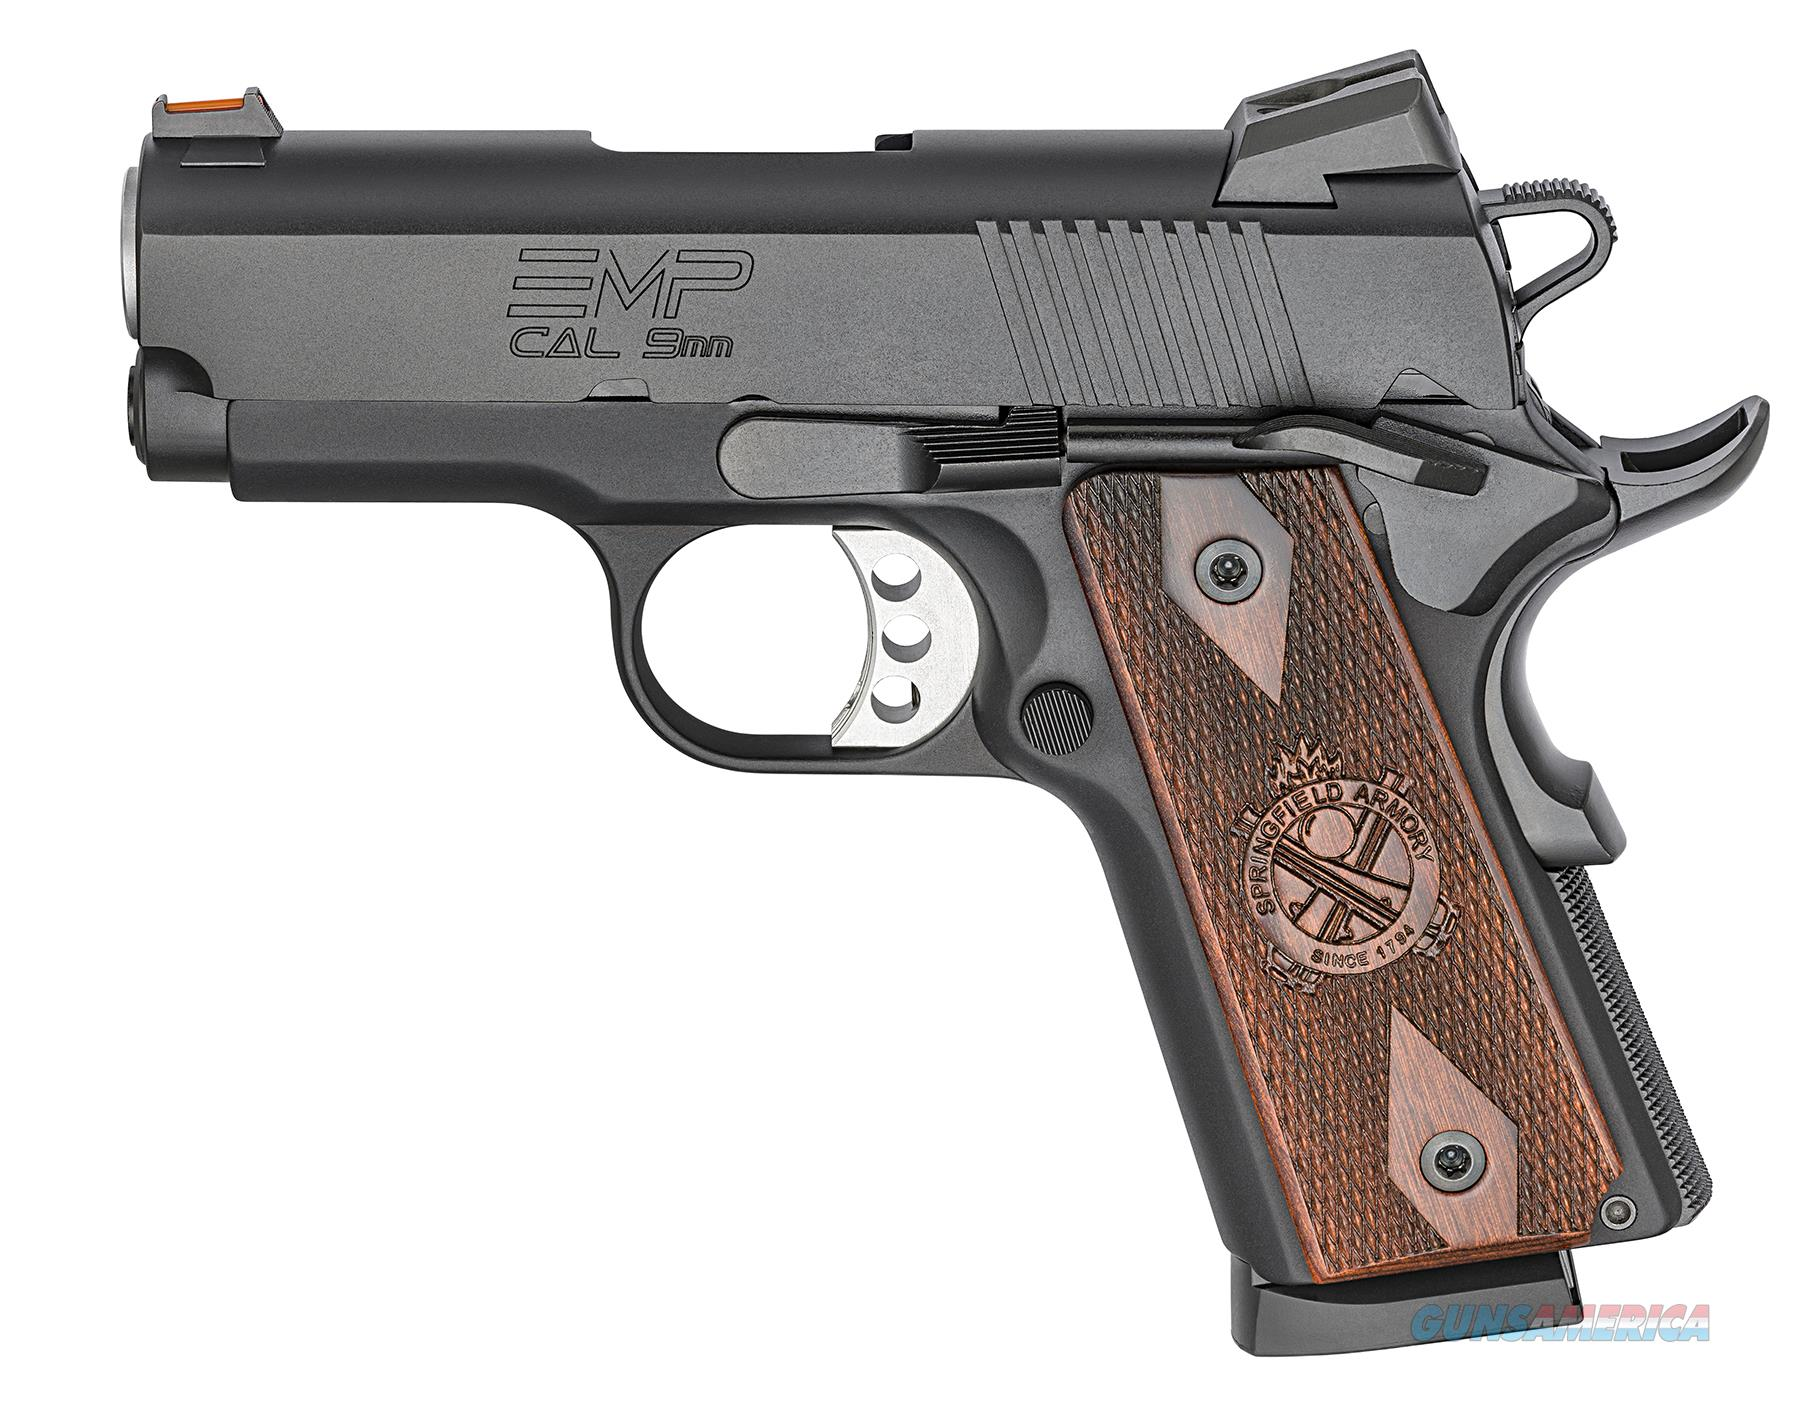 Springfield EMP 9mm Black Compact 1911 w/ 3 Mags PI9208L *NEW* PLUS - 4 Extra Mags, Holster and Mag Pouch  Guns > Pistols > Springfield Armory Pistols > 1911 Type